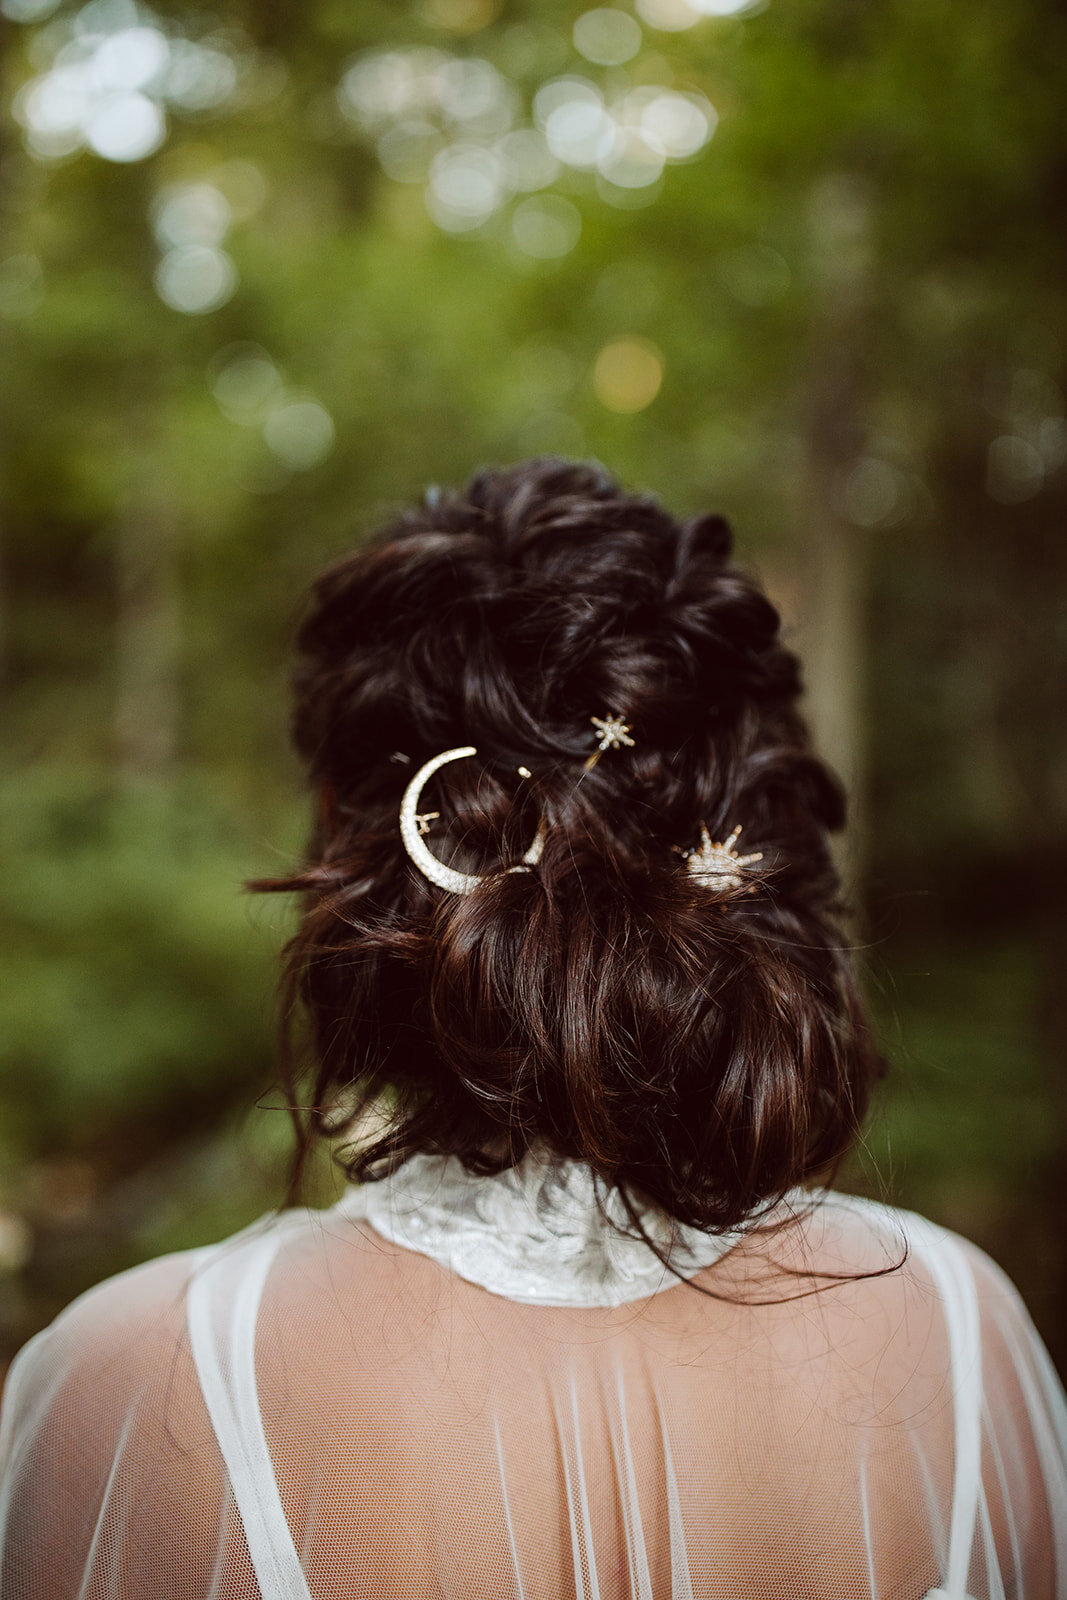 star and moon clips for wedding hair